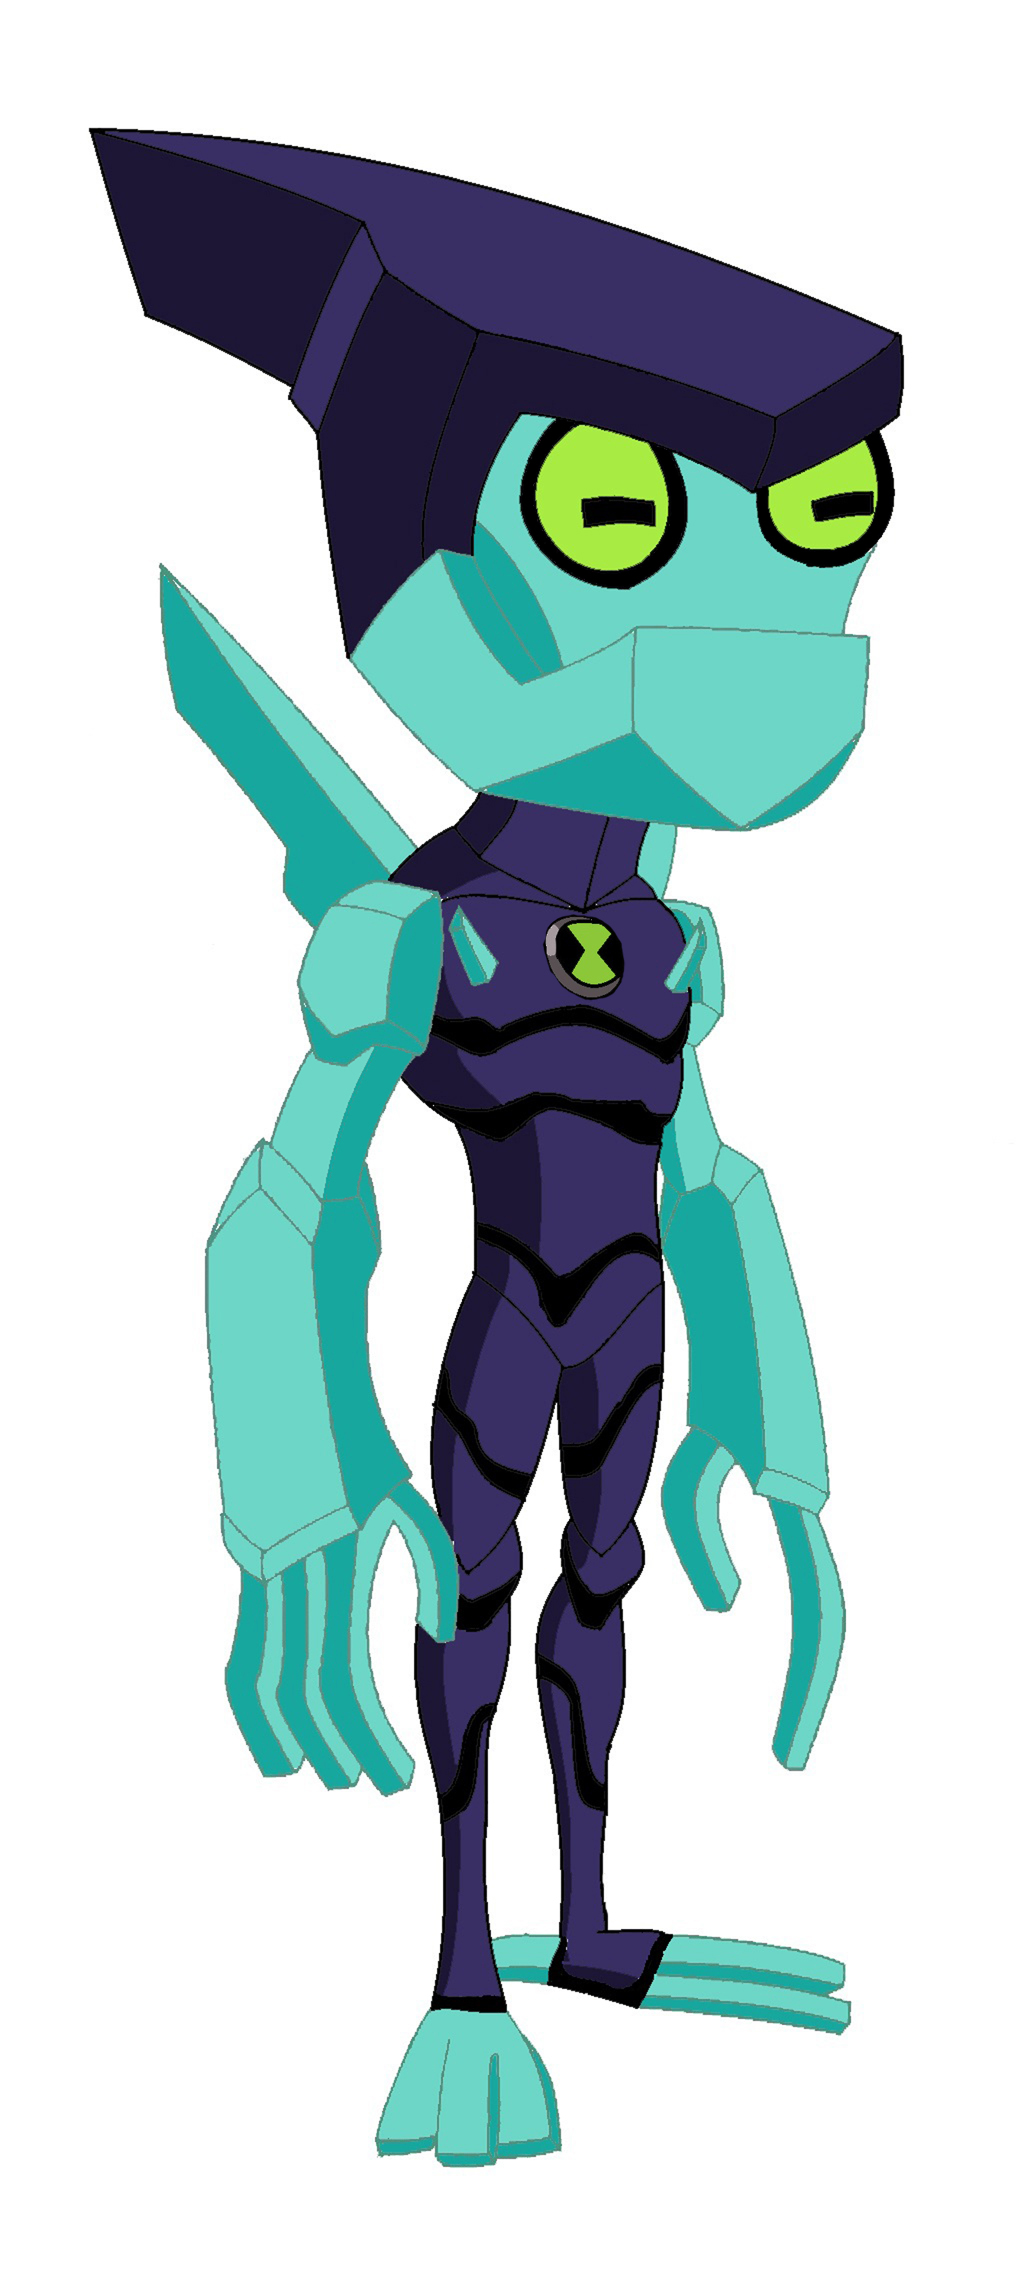 Casting Call Alien Overlords 2 as well 11798 in addition Story D8VT3taO2bz3otHP06EIUK furthermore Pokemon Mew And Mewtwo Redesigns 288813754 furthermore Families House Lulamoon. on second the intelligent species